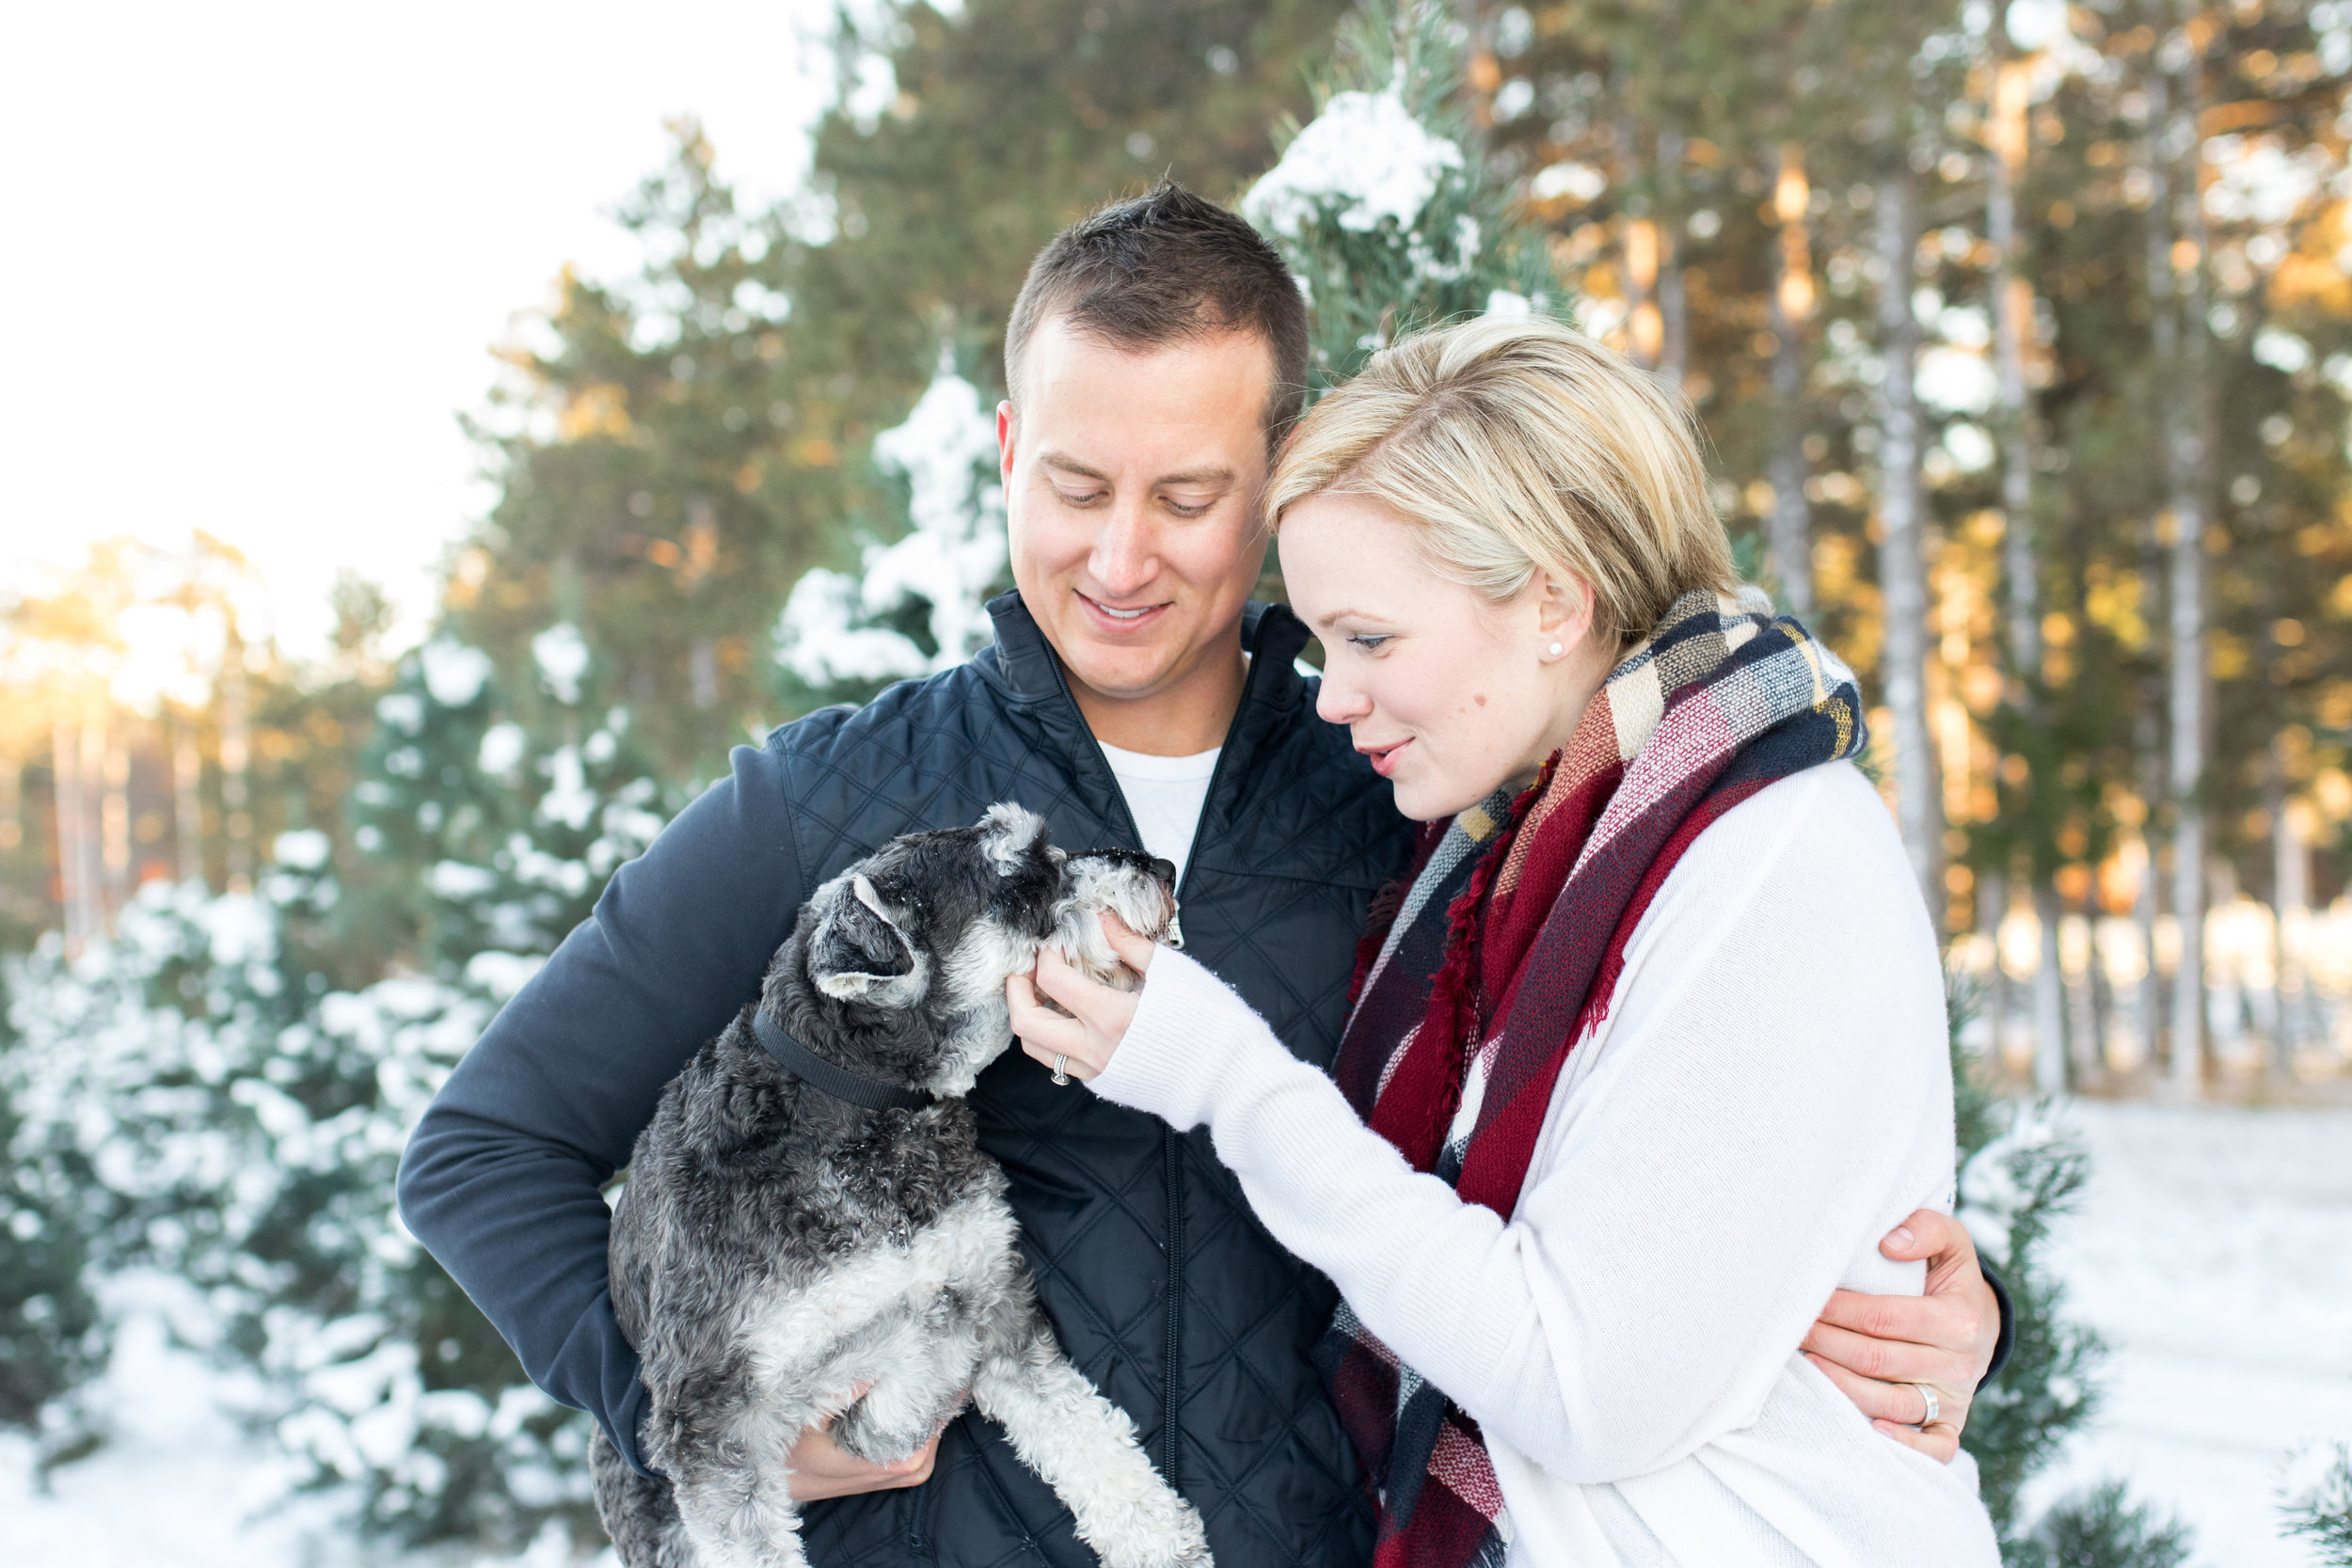 Nielsen Mini Session - Hansen Tree Farm -Sabrina Reis Photography - Minneapolis -25.jpg